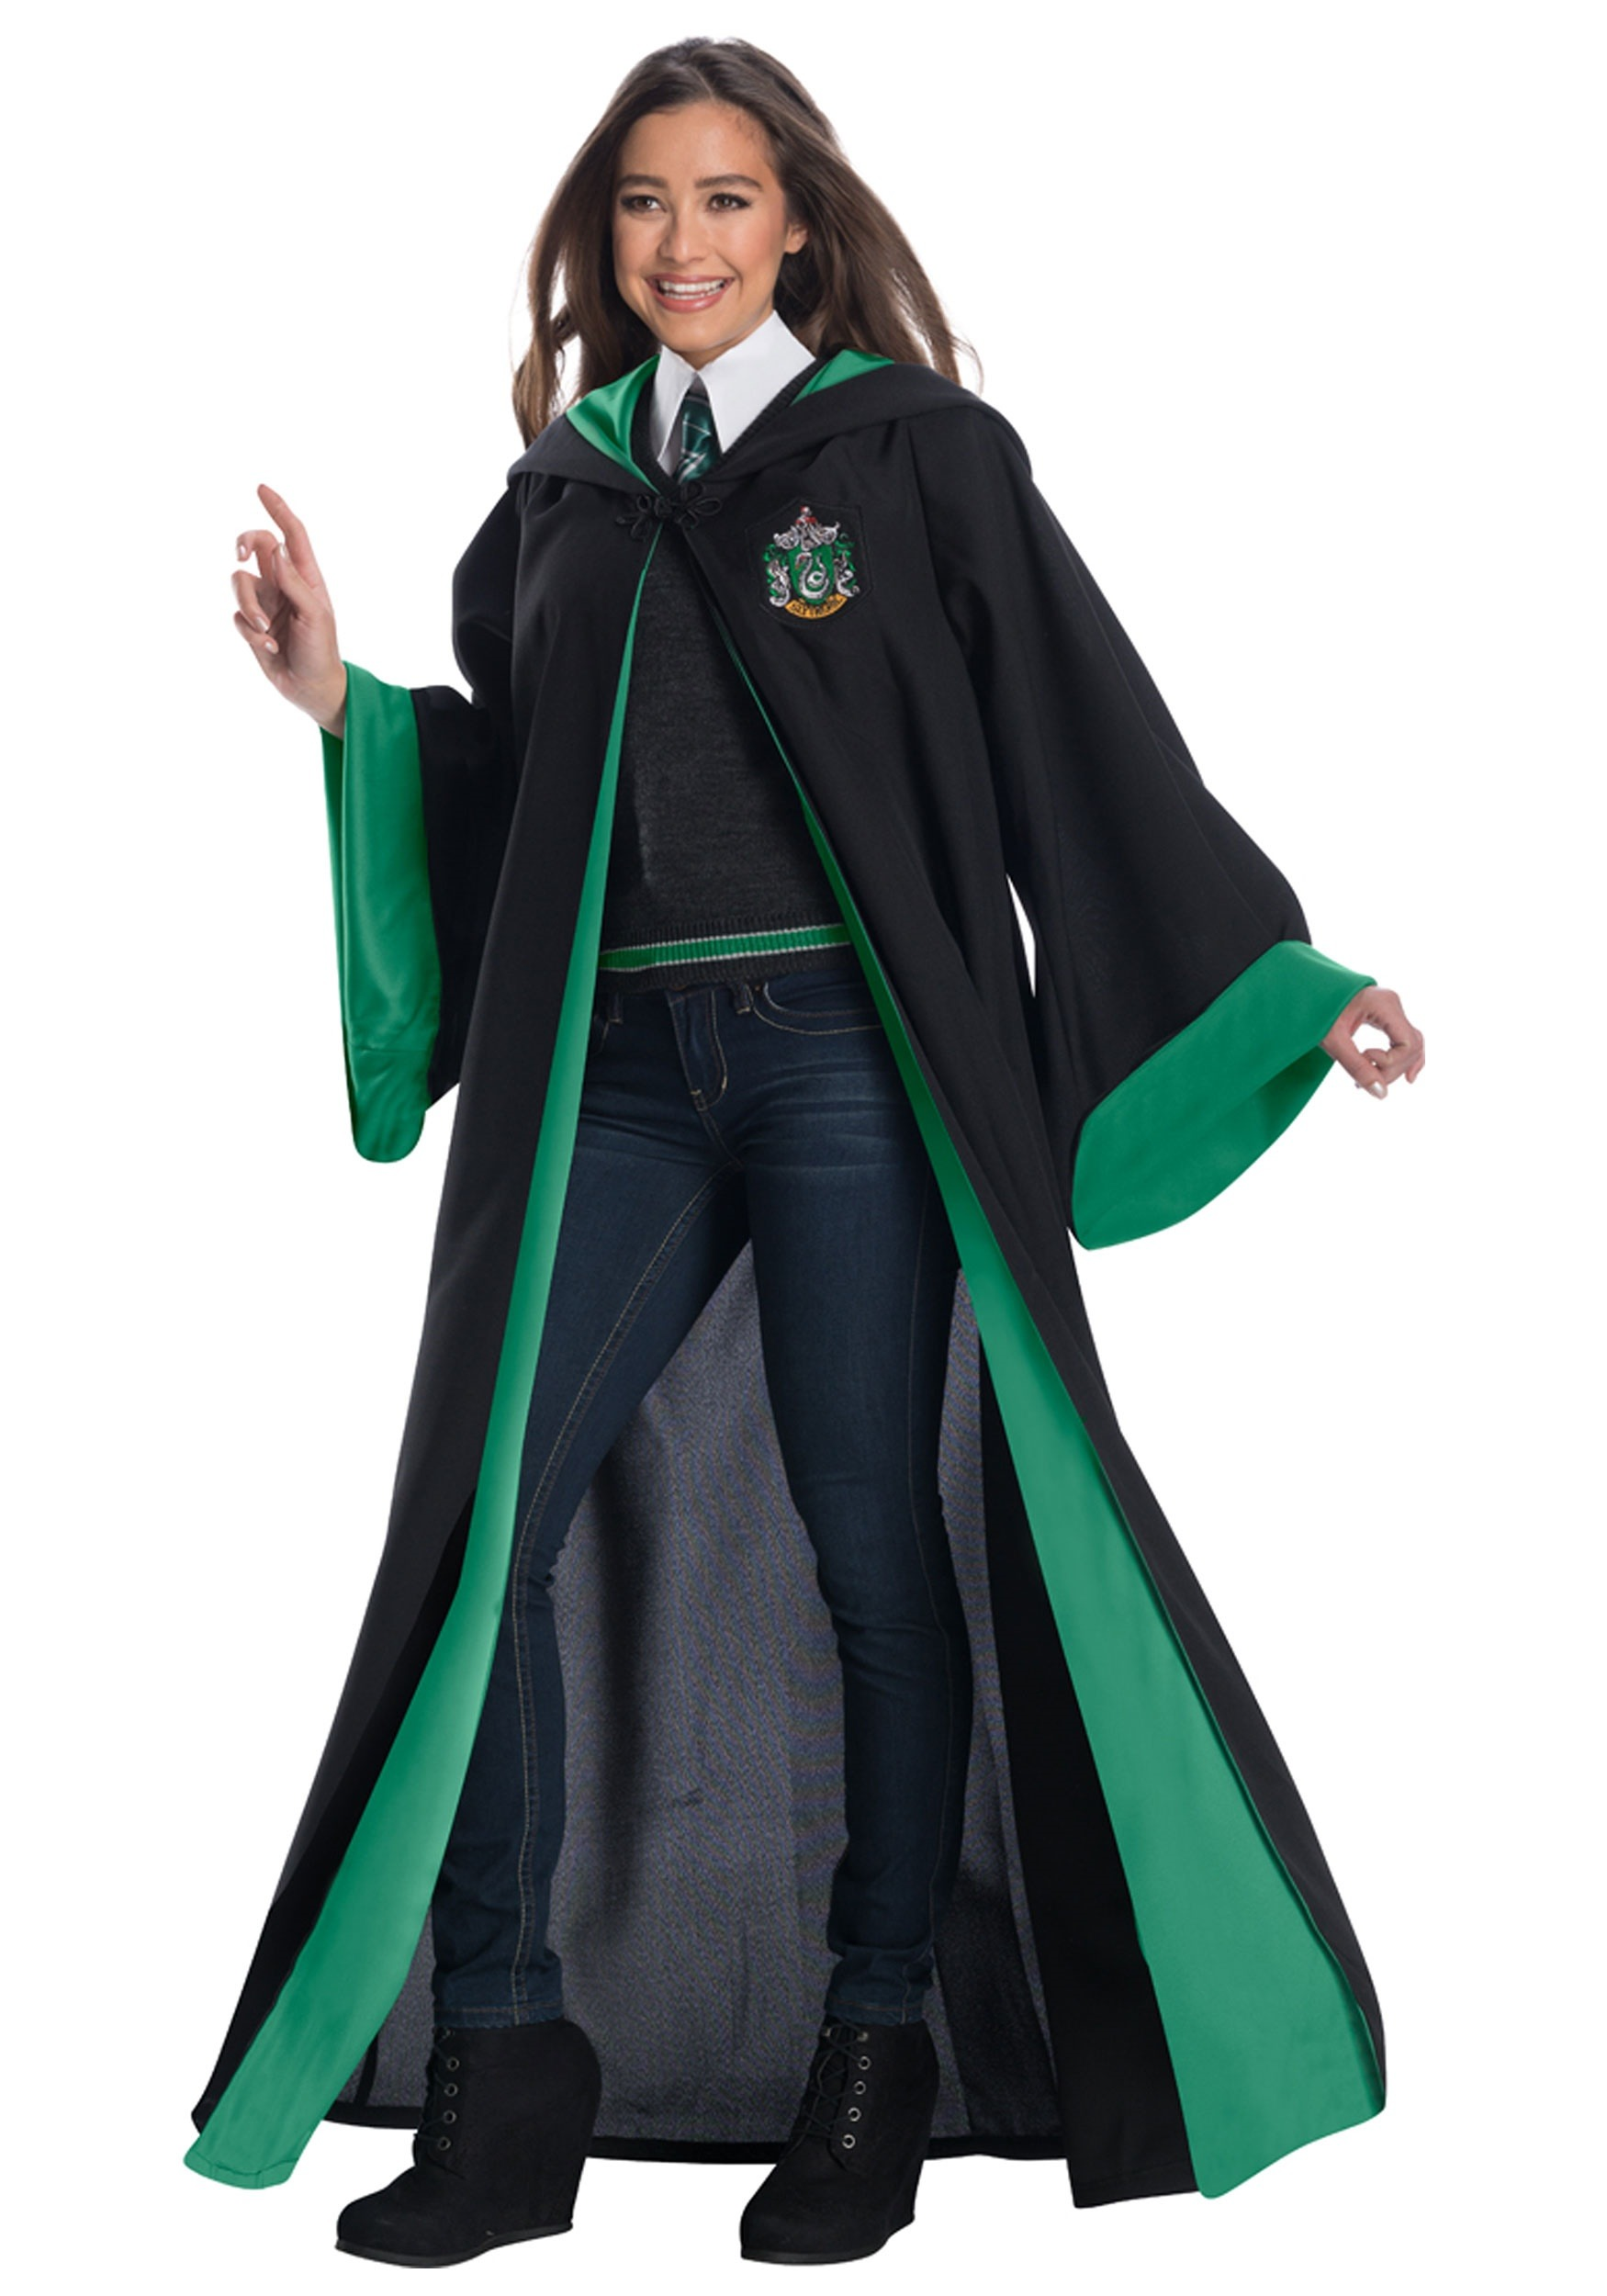 deluxe slytherin student costume for adults